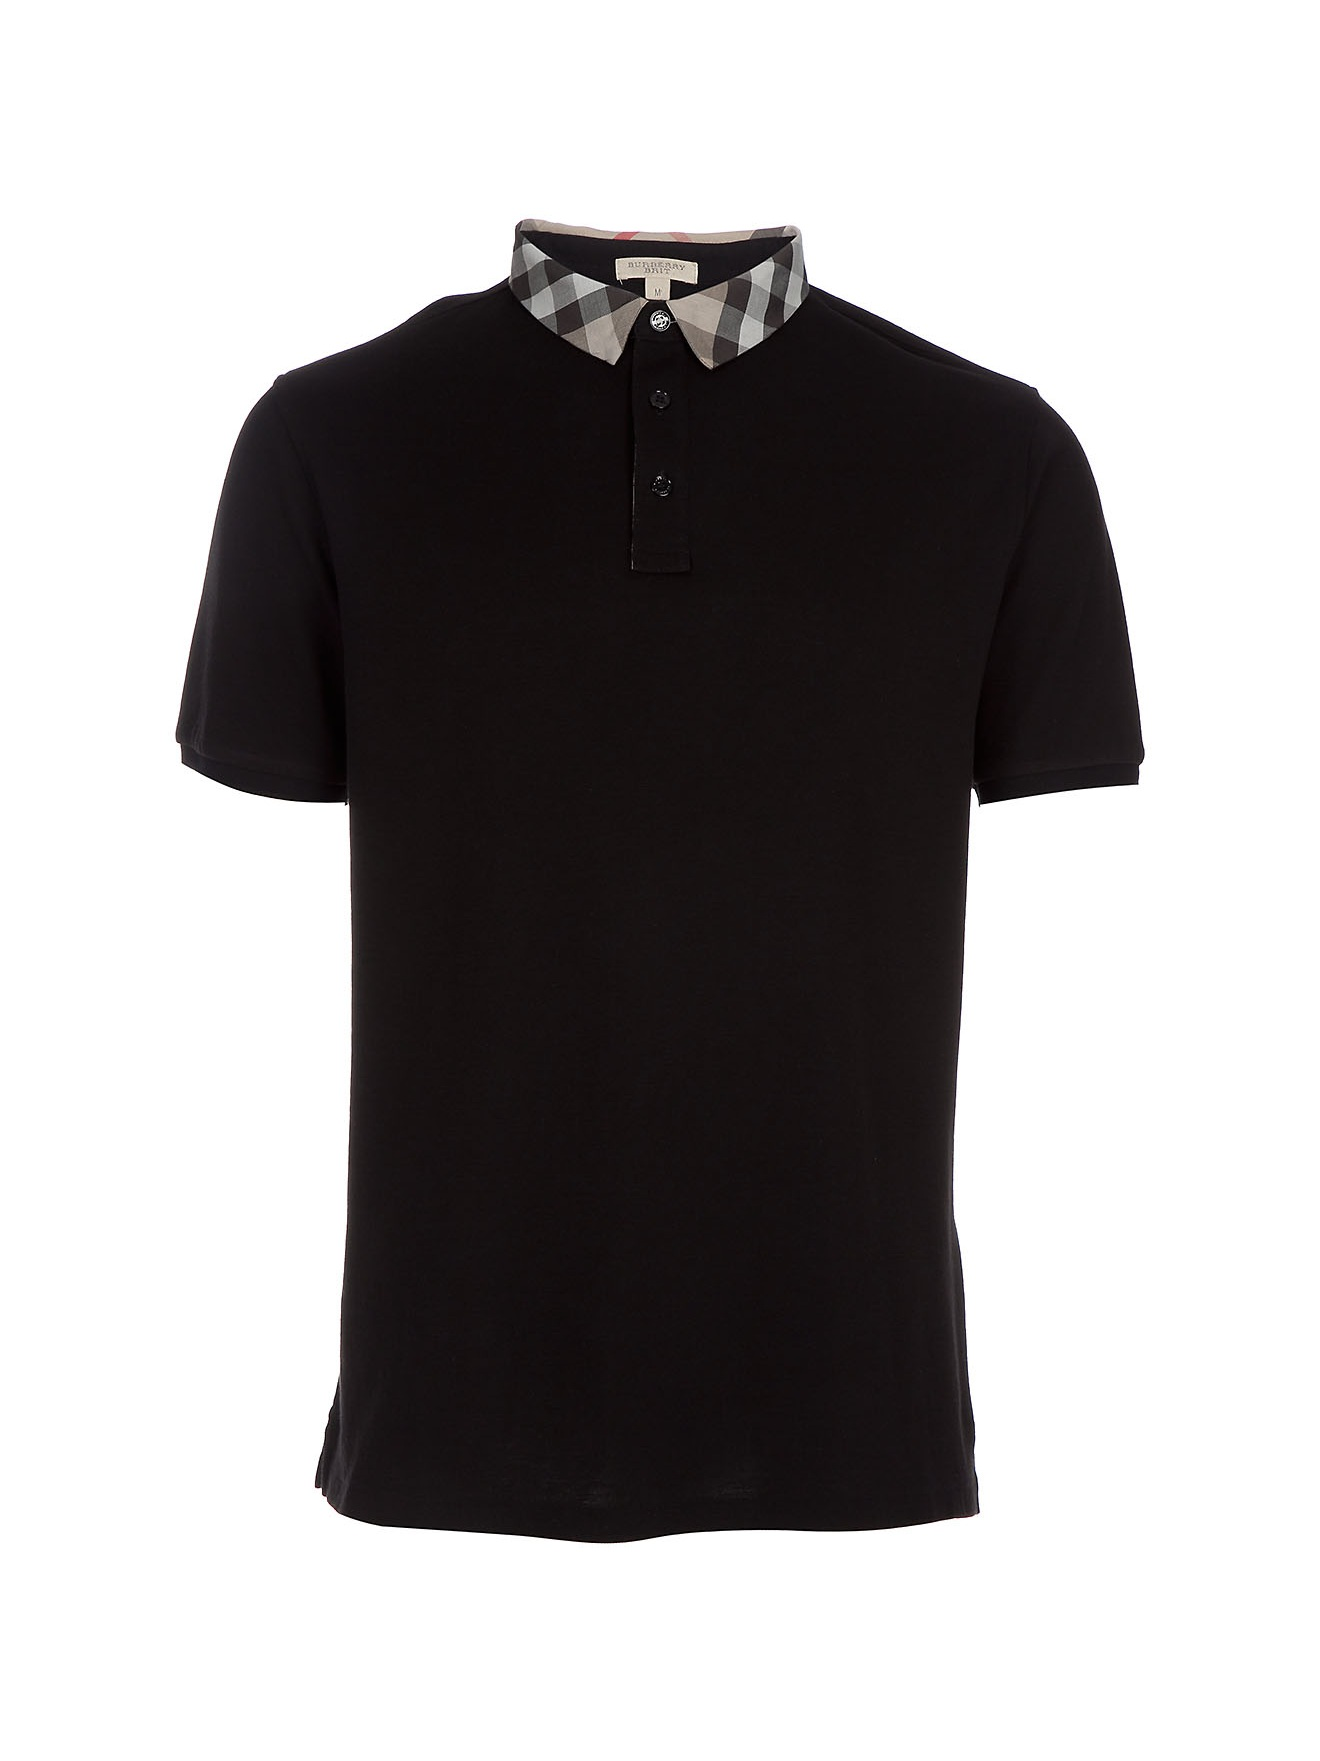 With a slim, sporty fit and instantly-recognizable button-down collar, the AE men's polo shirt is equal parts traditional and modern, rooted in historical fashion and updated with the most advanced, comfortable fabrics.